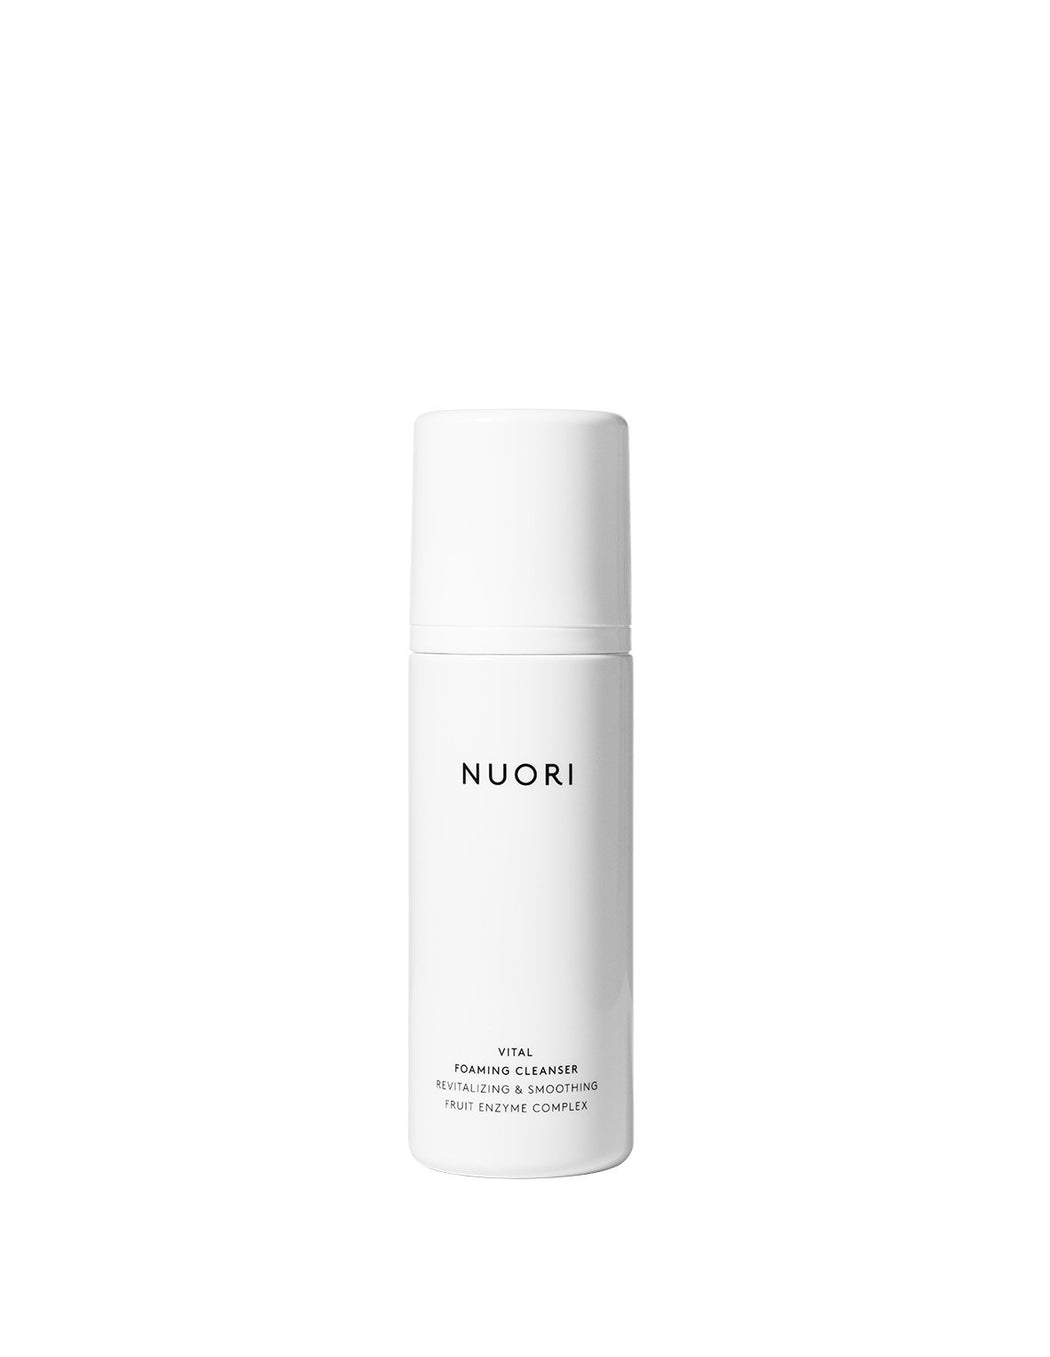 NUORI Vital Foaming Cleanser 100ml